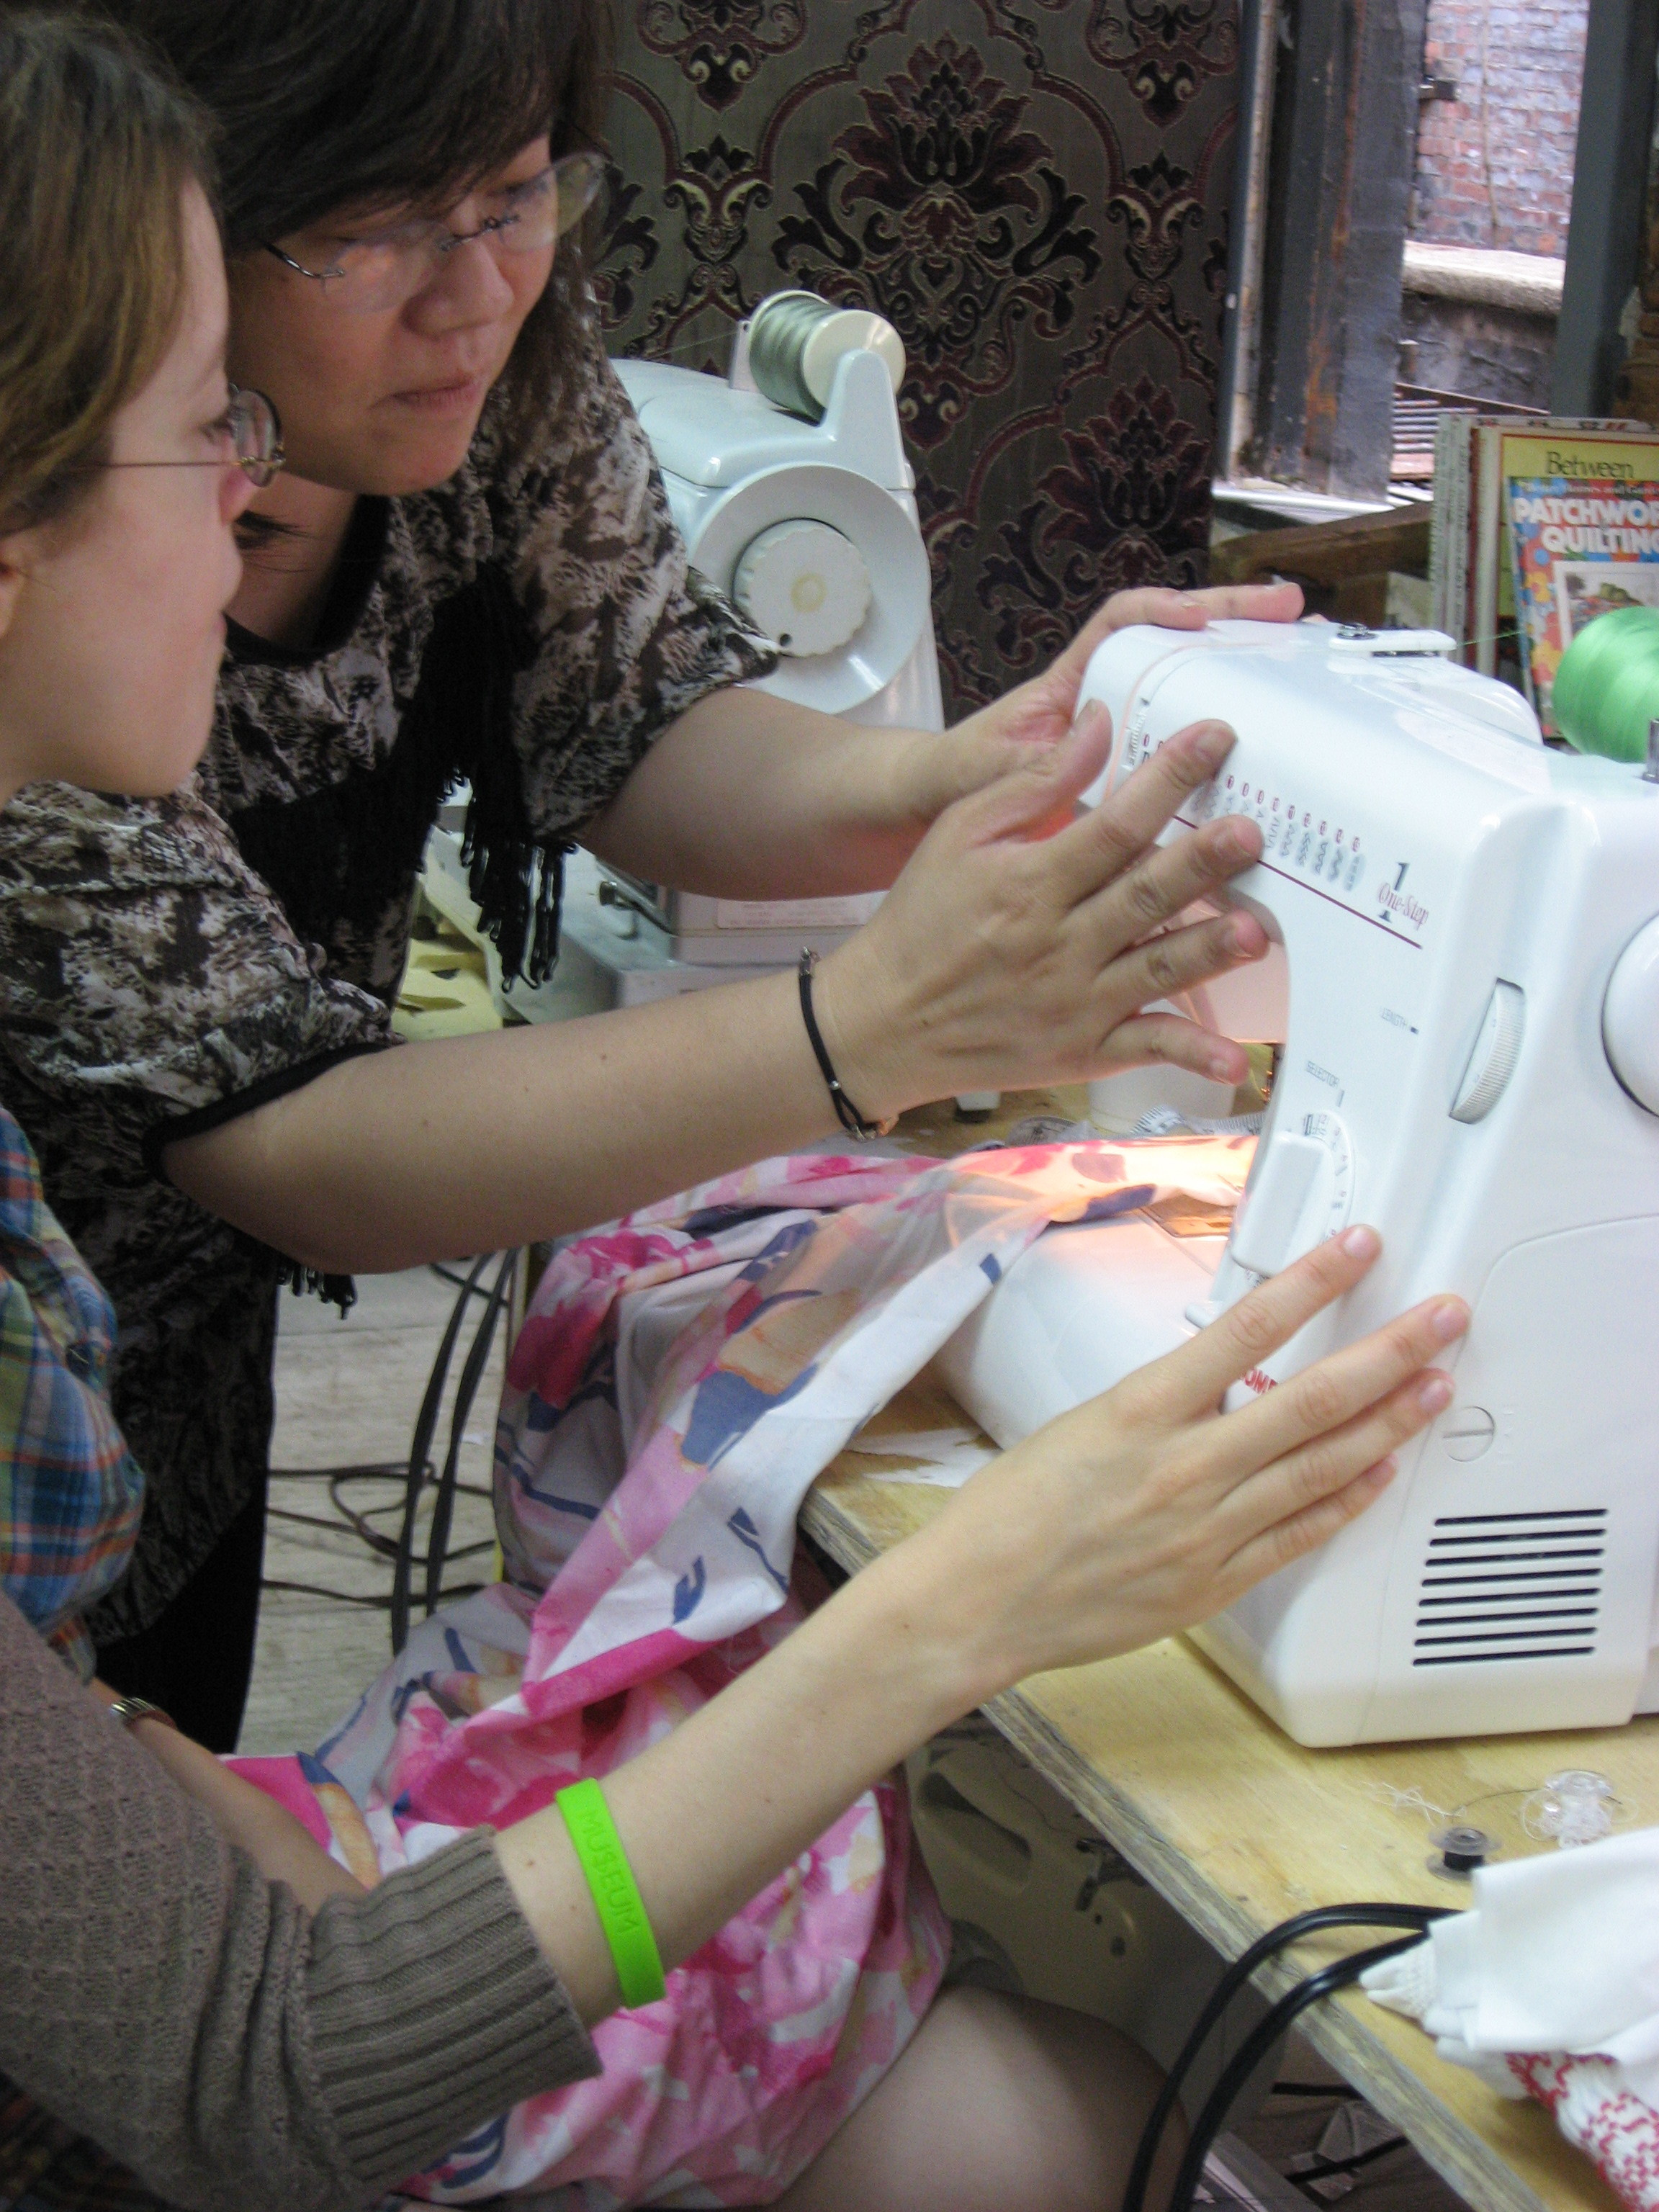 figuring-out-the-sewing-machine_4943407434_o.jpg